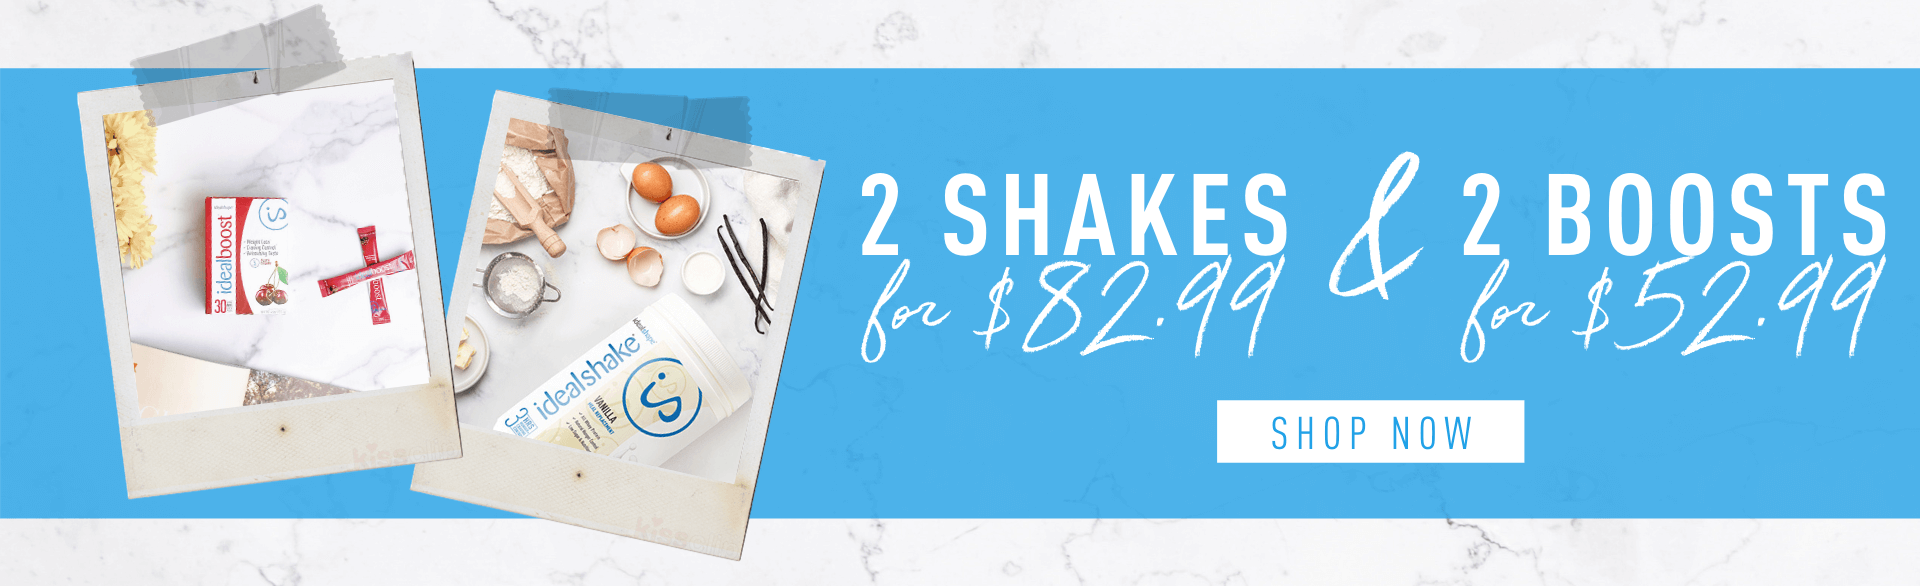 2 shakes for $82.99 and 2 boost for $52.99